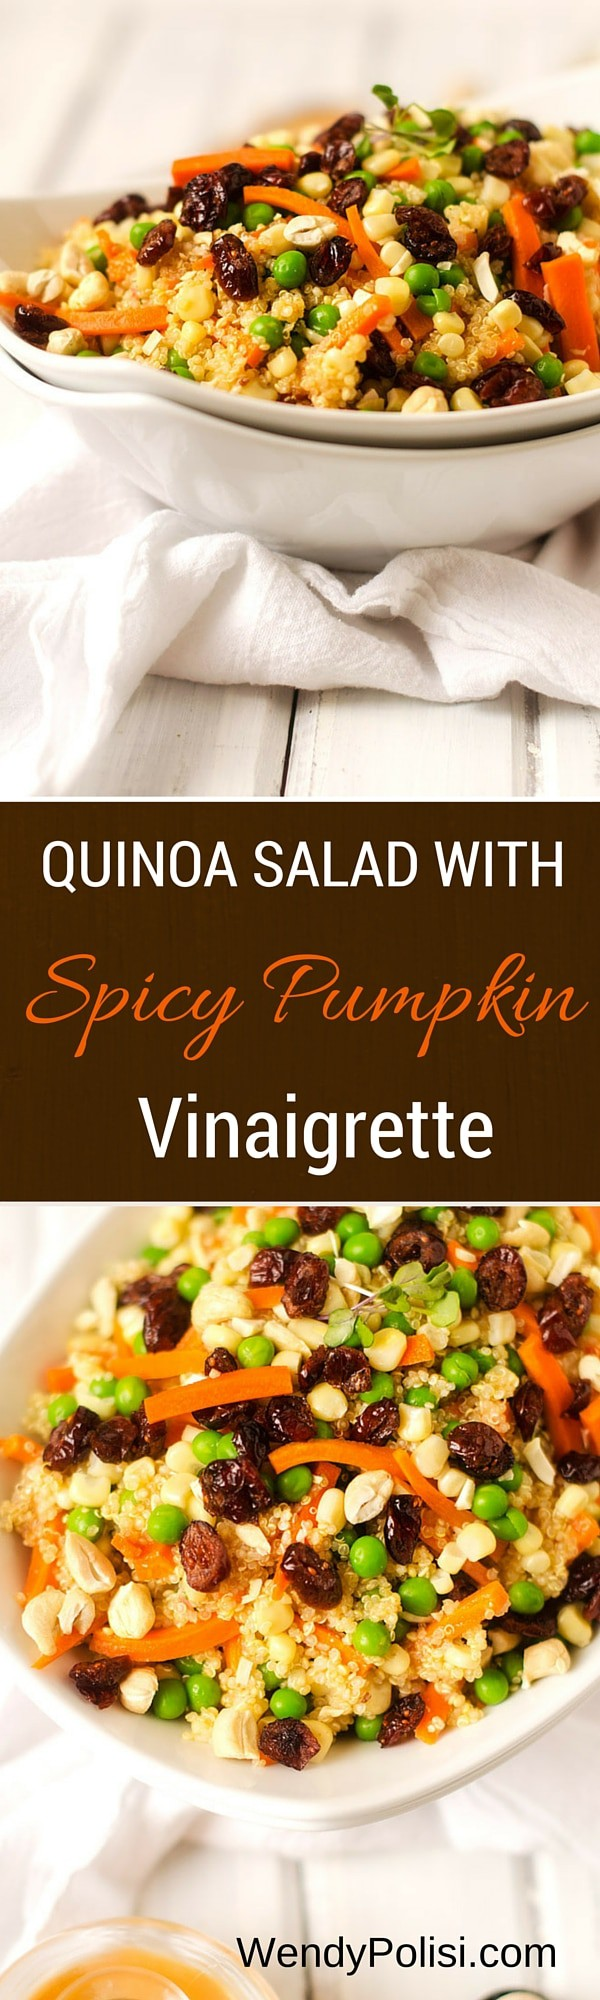 Quinoa Salad with Spicy Pumpkin Vinaigrette